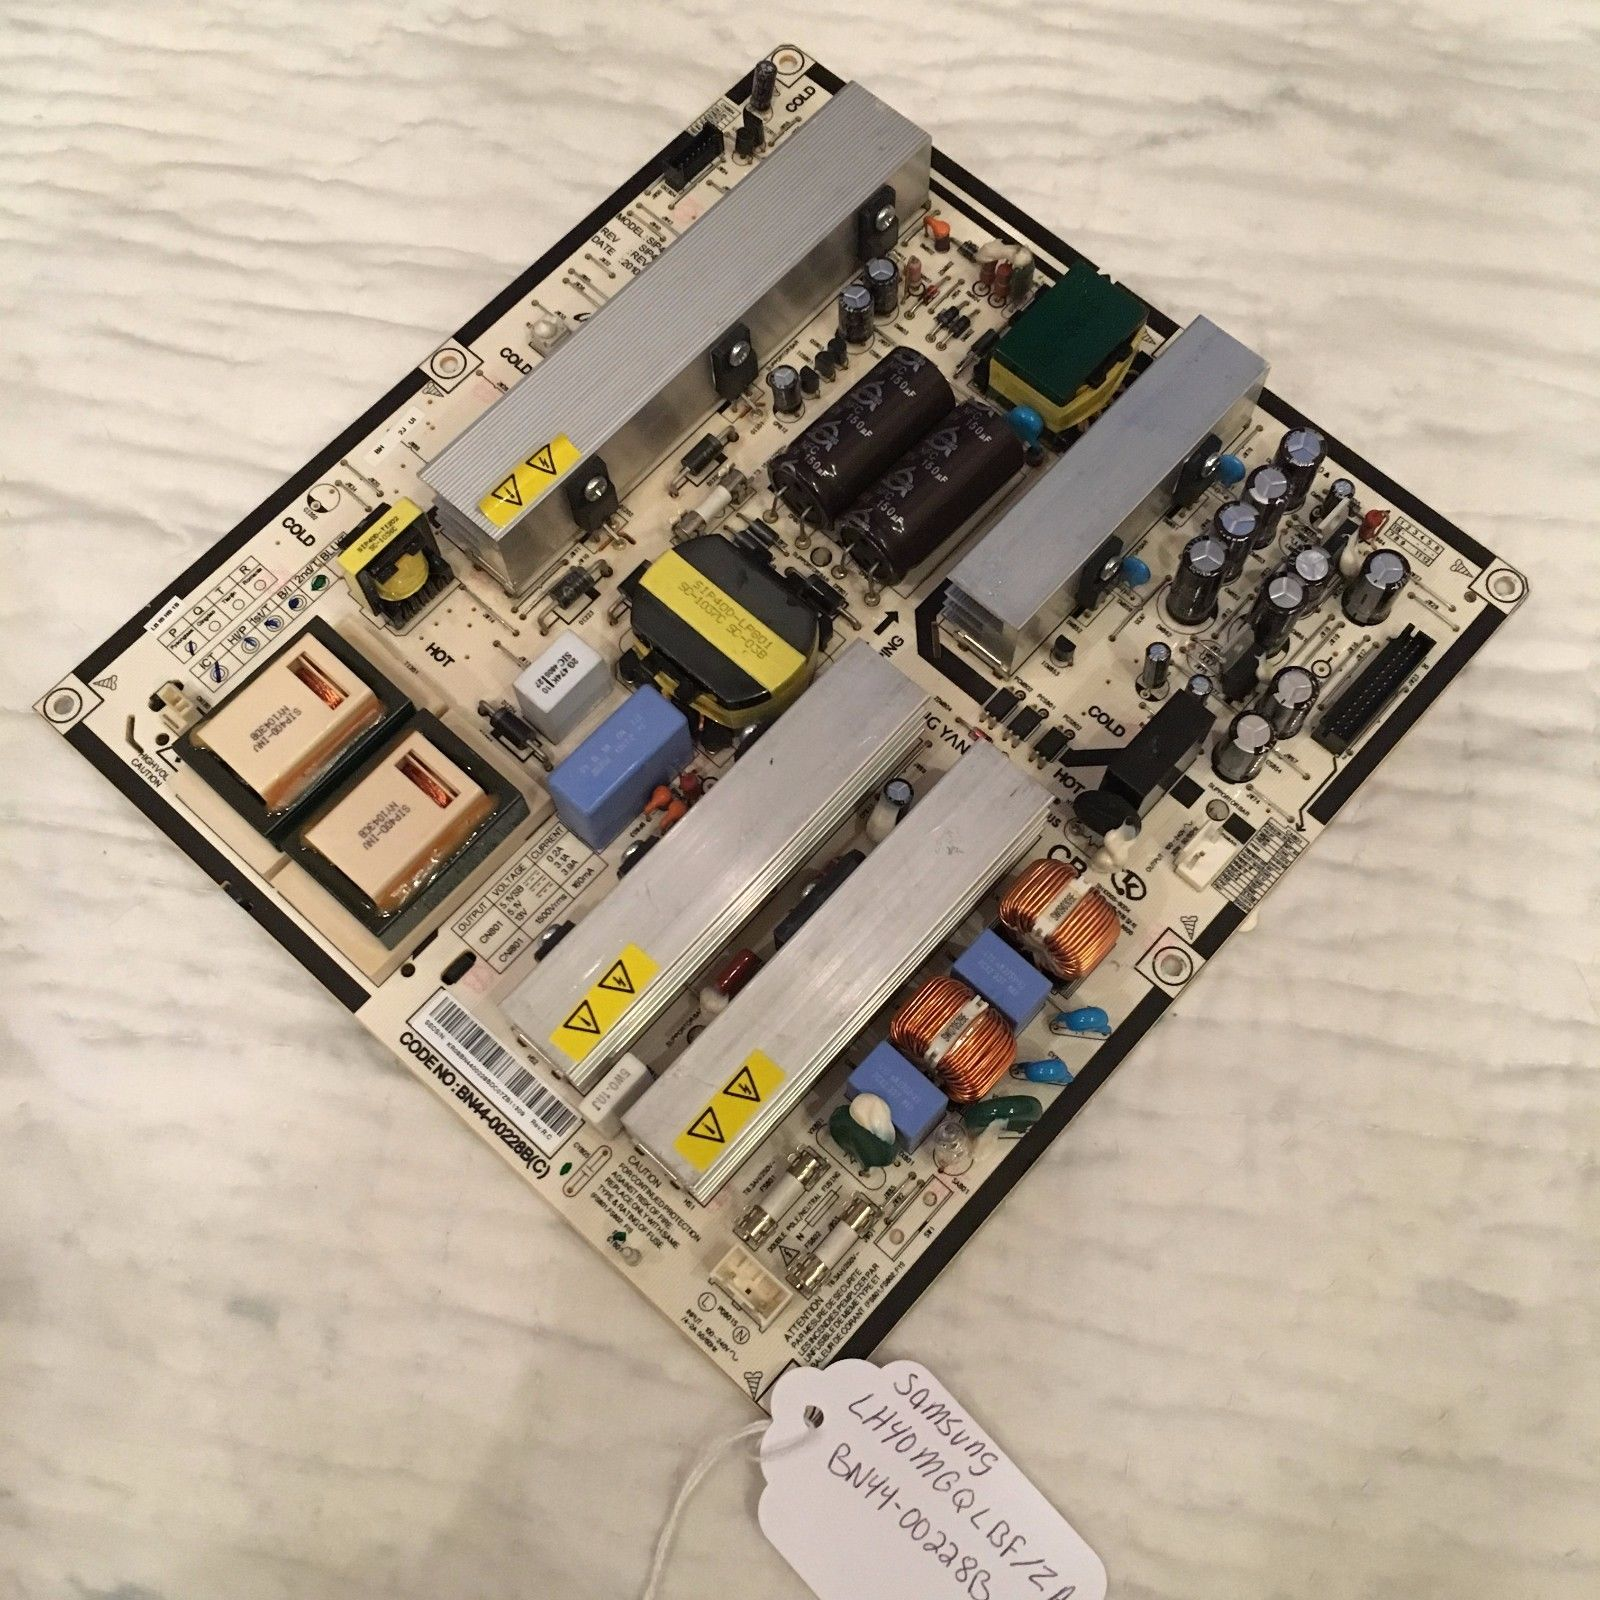 SAMSUNG BN44-00228B POWER SUPPLY BOARD FOR LH40MGQLBF/ZA AND OTH